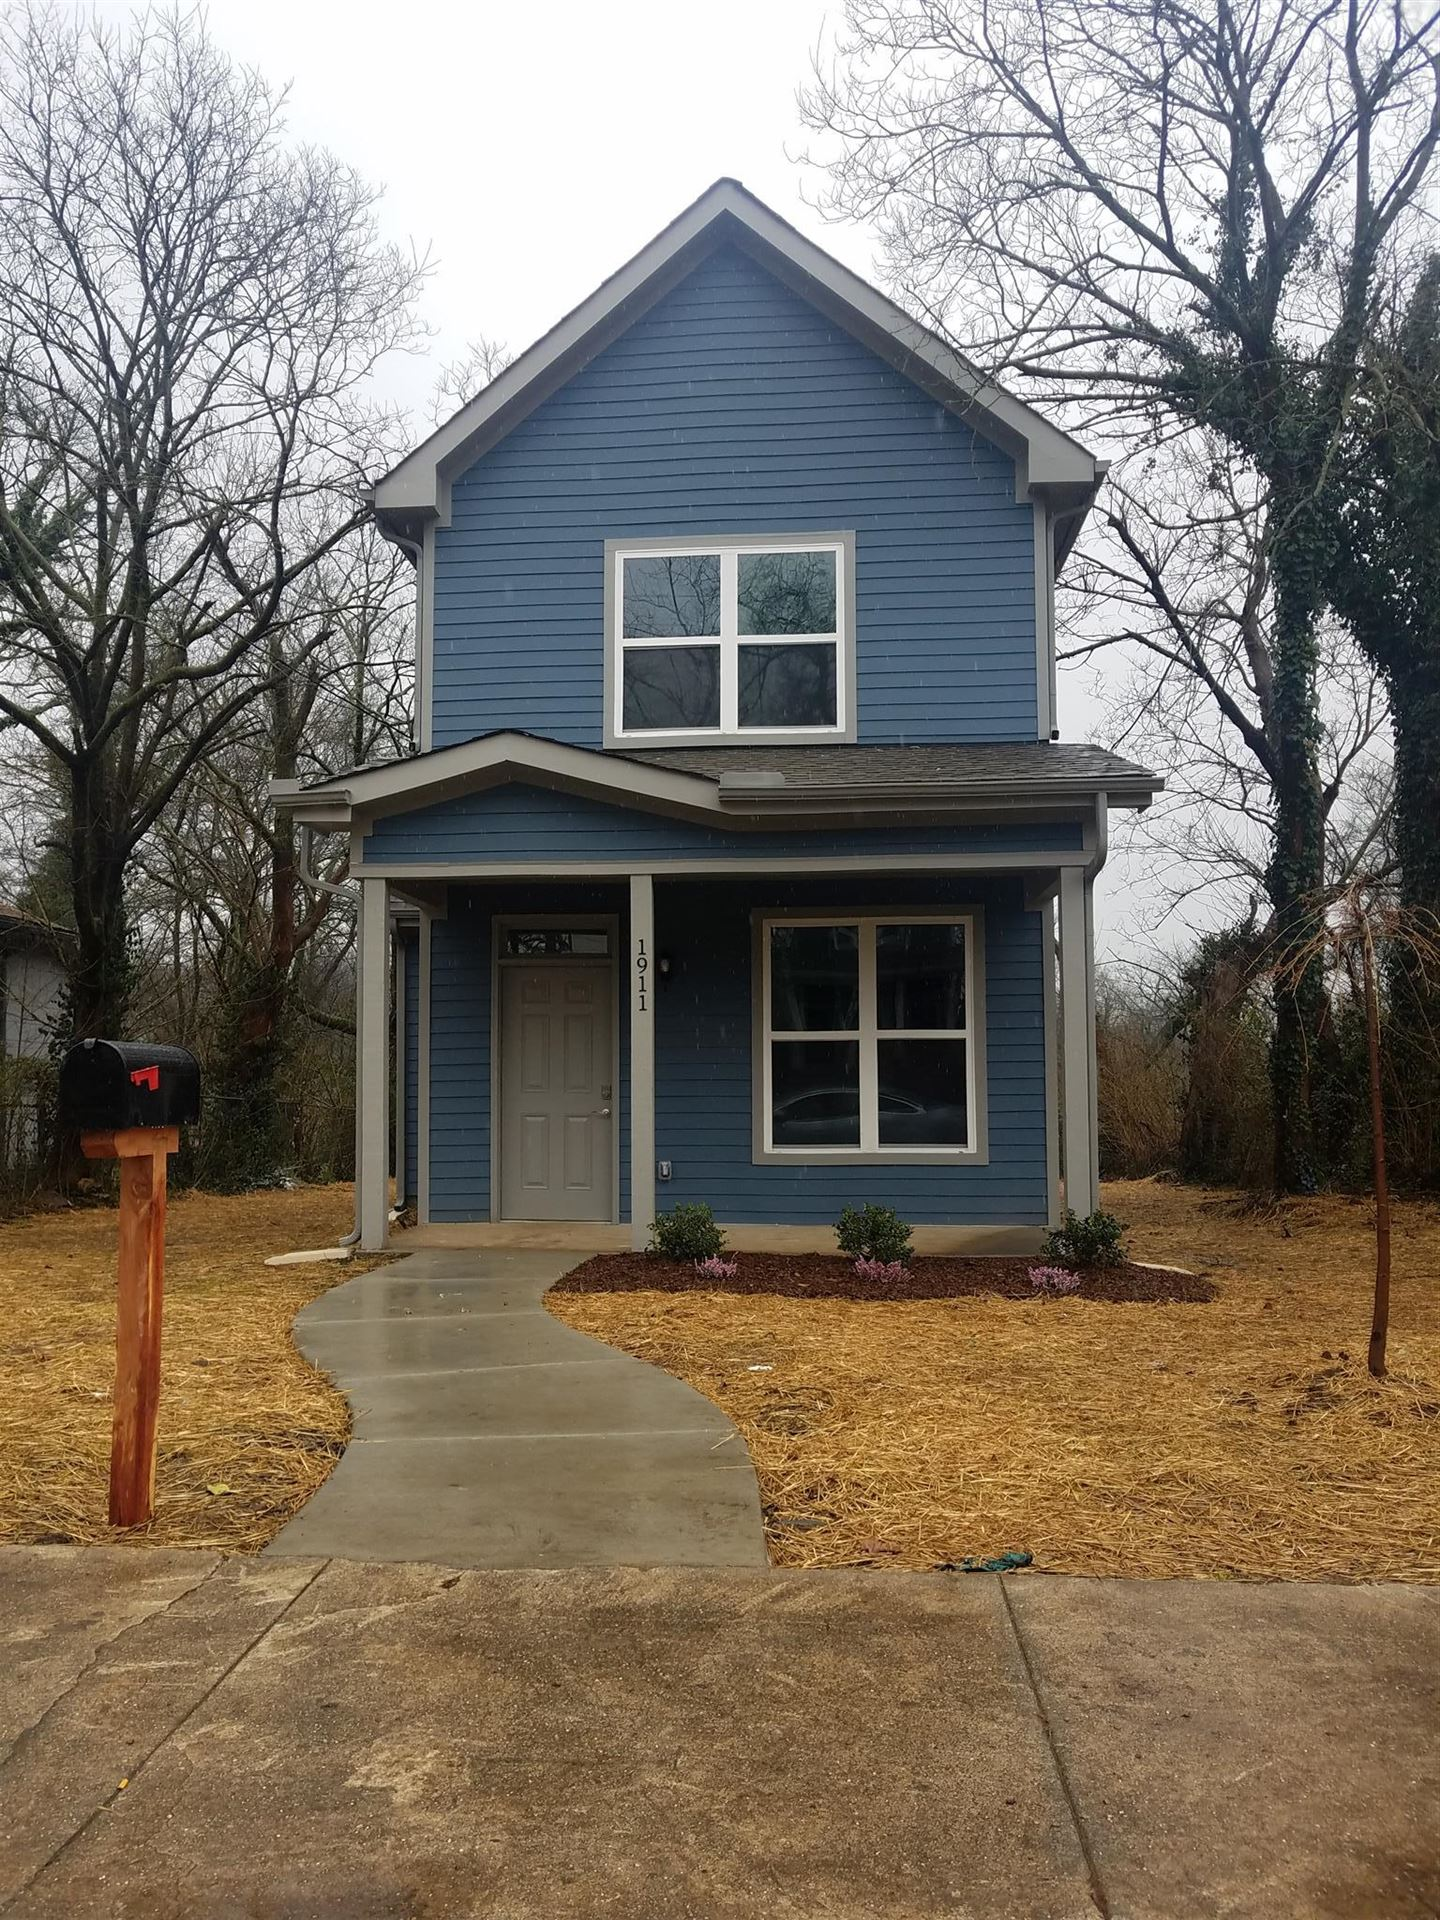 Property Image Of 1822 Cephas St In Nashville, Tn